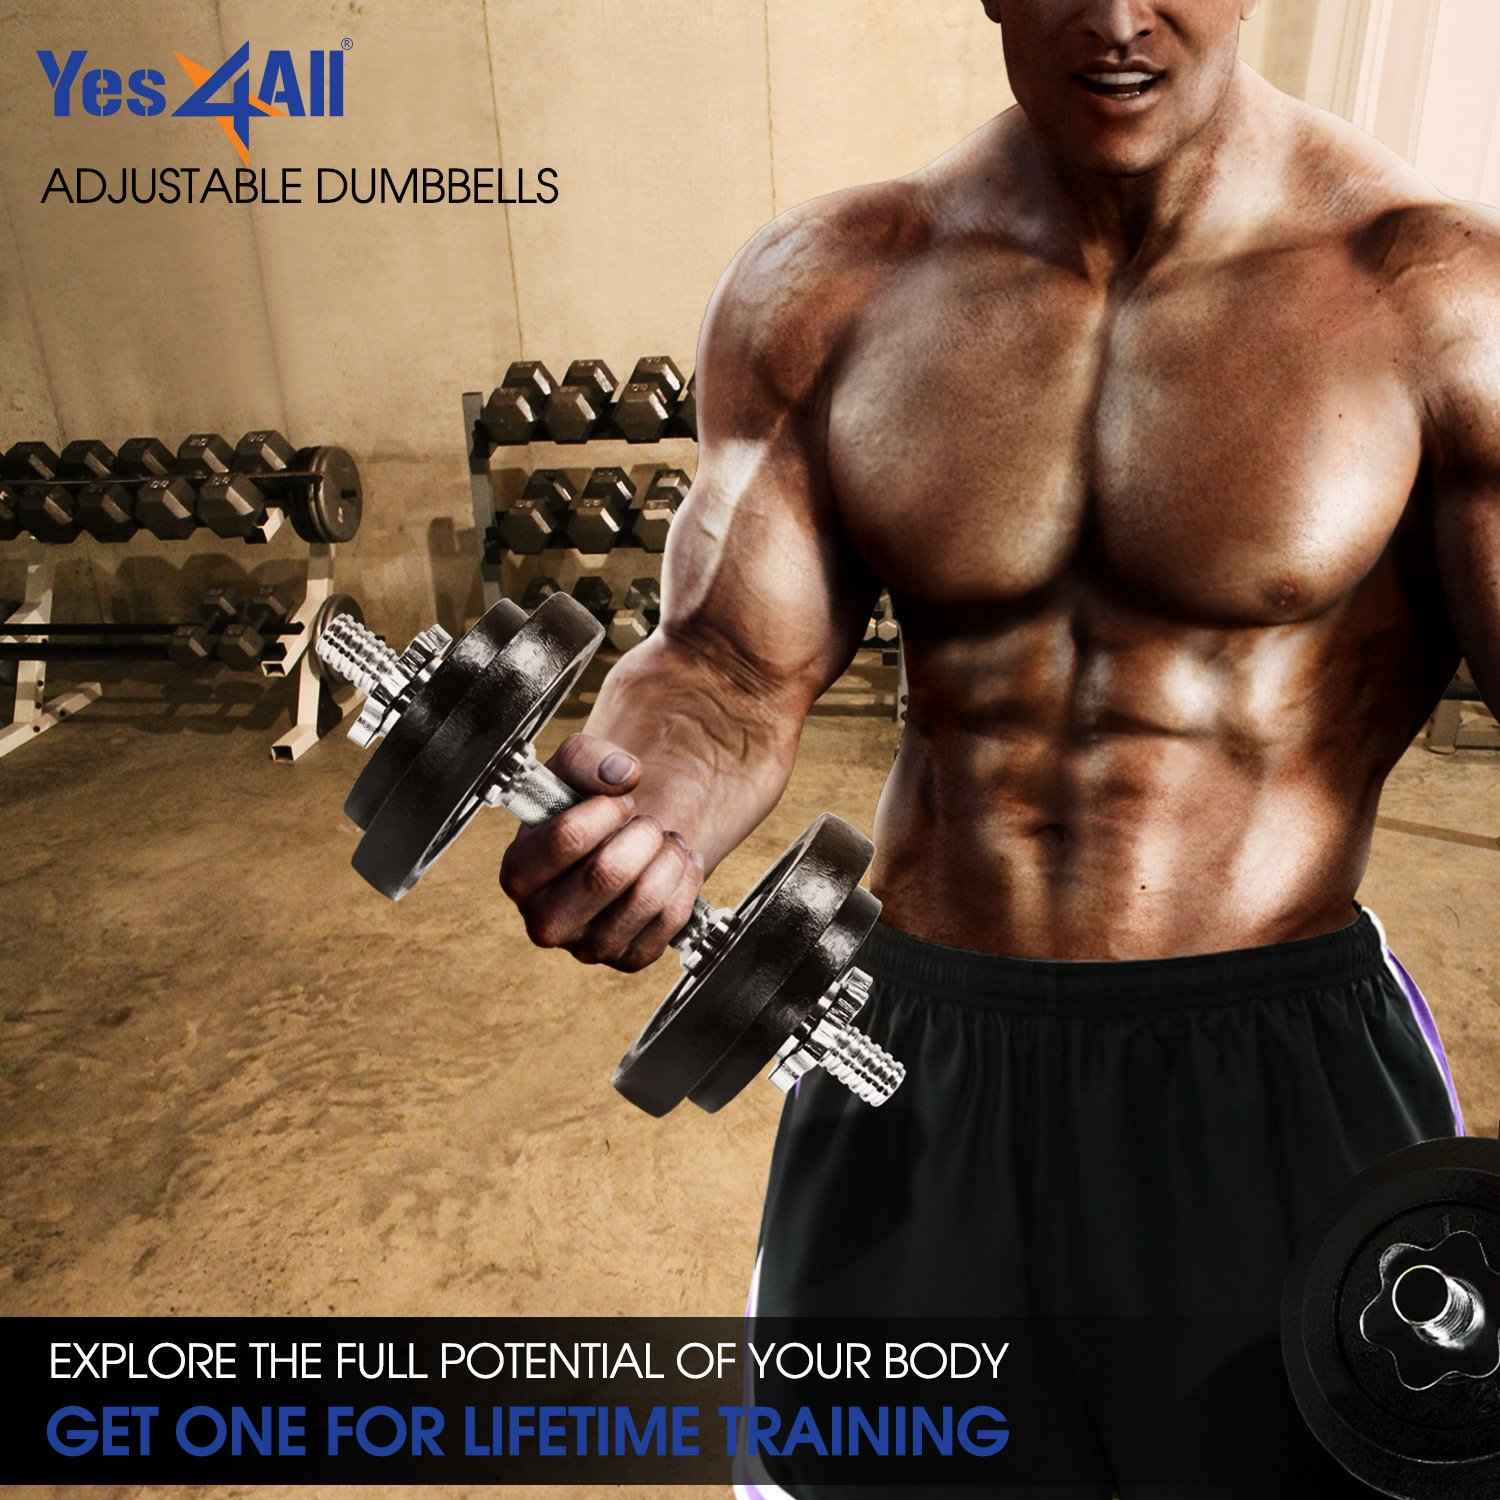 Yes4All - Mancuernas ajustables (18,1 / 22,7 / 23,8 / 27,2 / 47,6 / 90,7 kg) - D2CL, Negro: Amazon.es: Deportes y aire libre